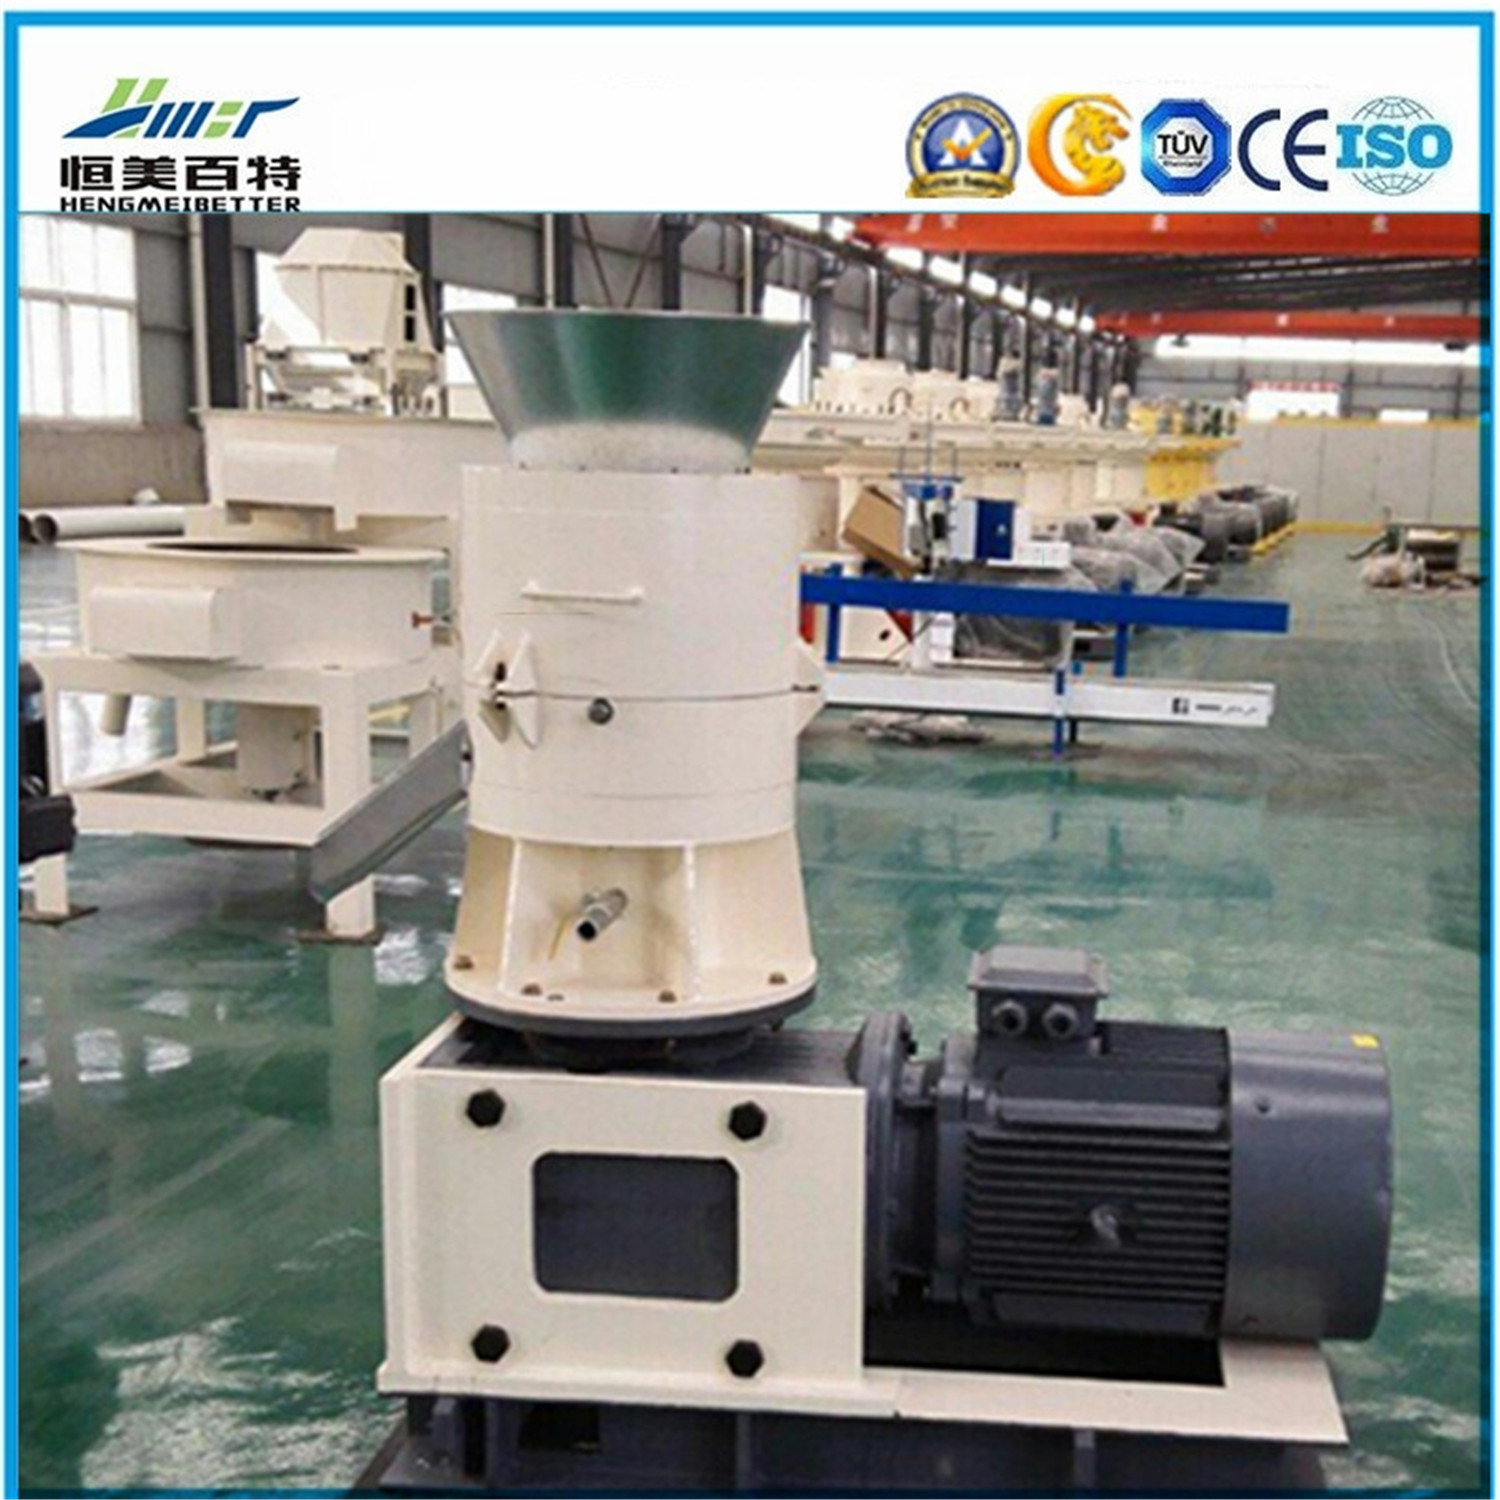 Hmbt Professional Design Flat Die Pellets Machine